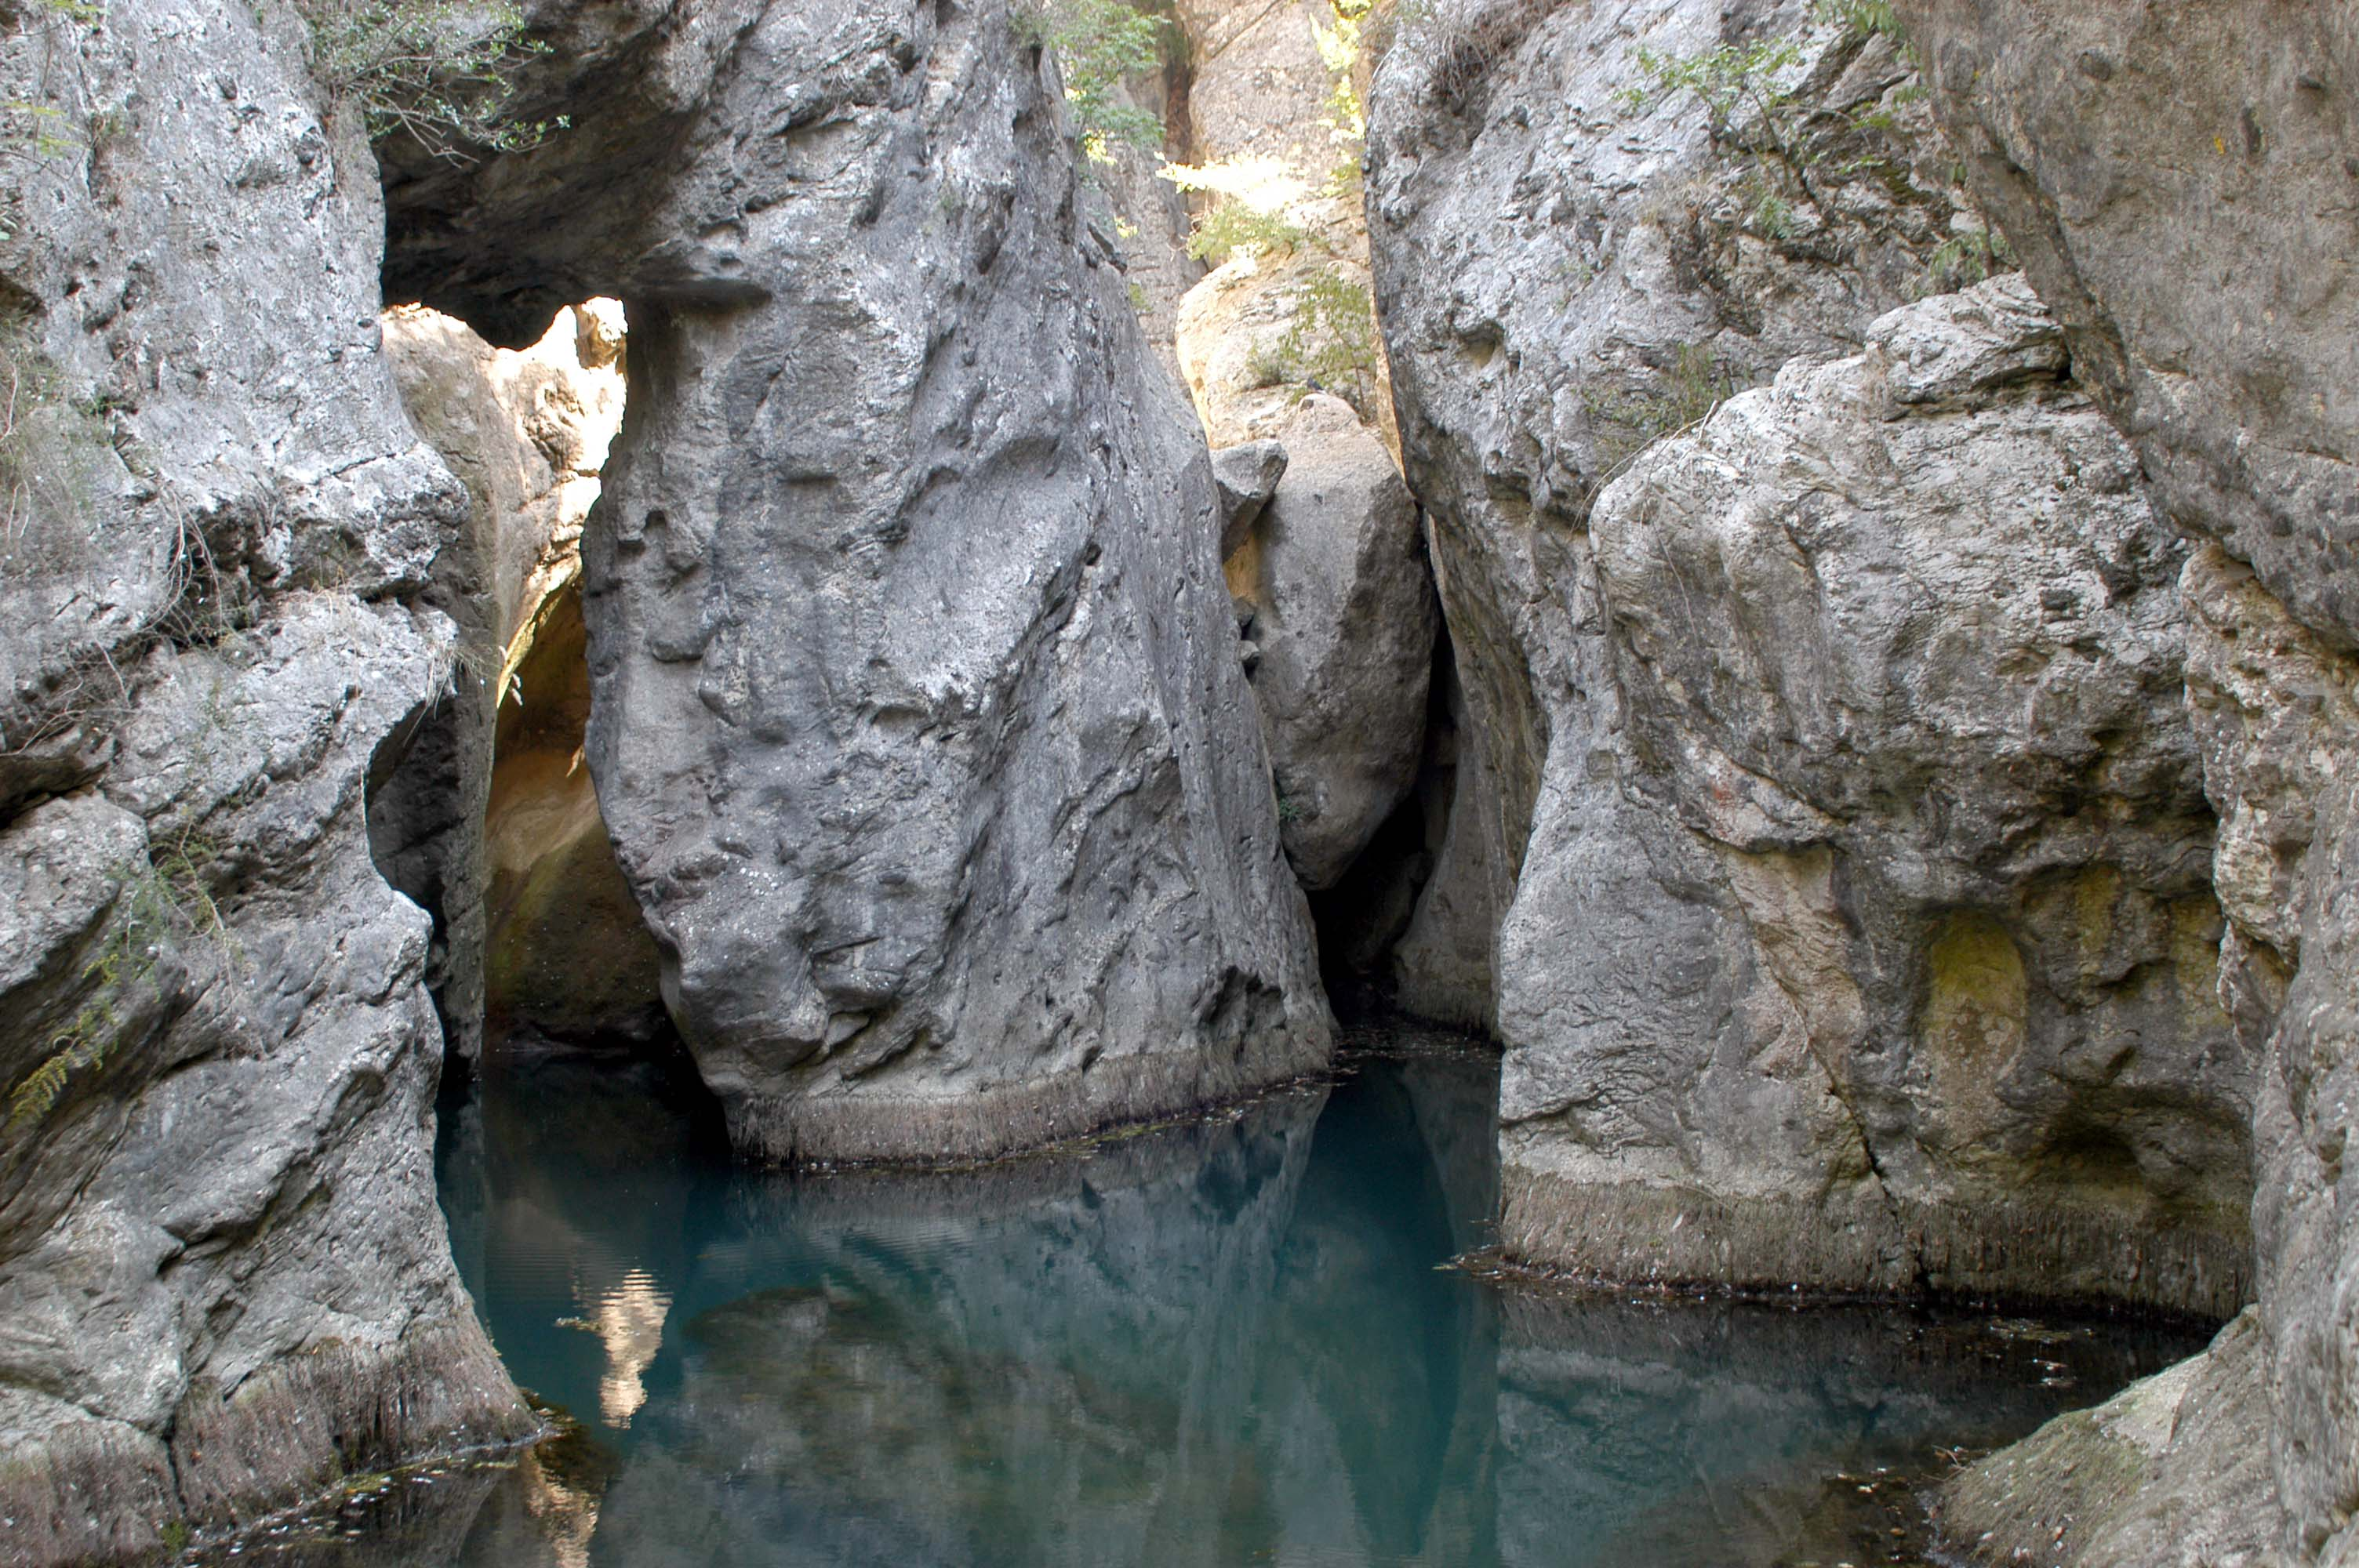 The Parrano thermal water